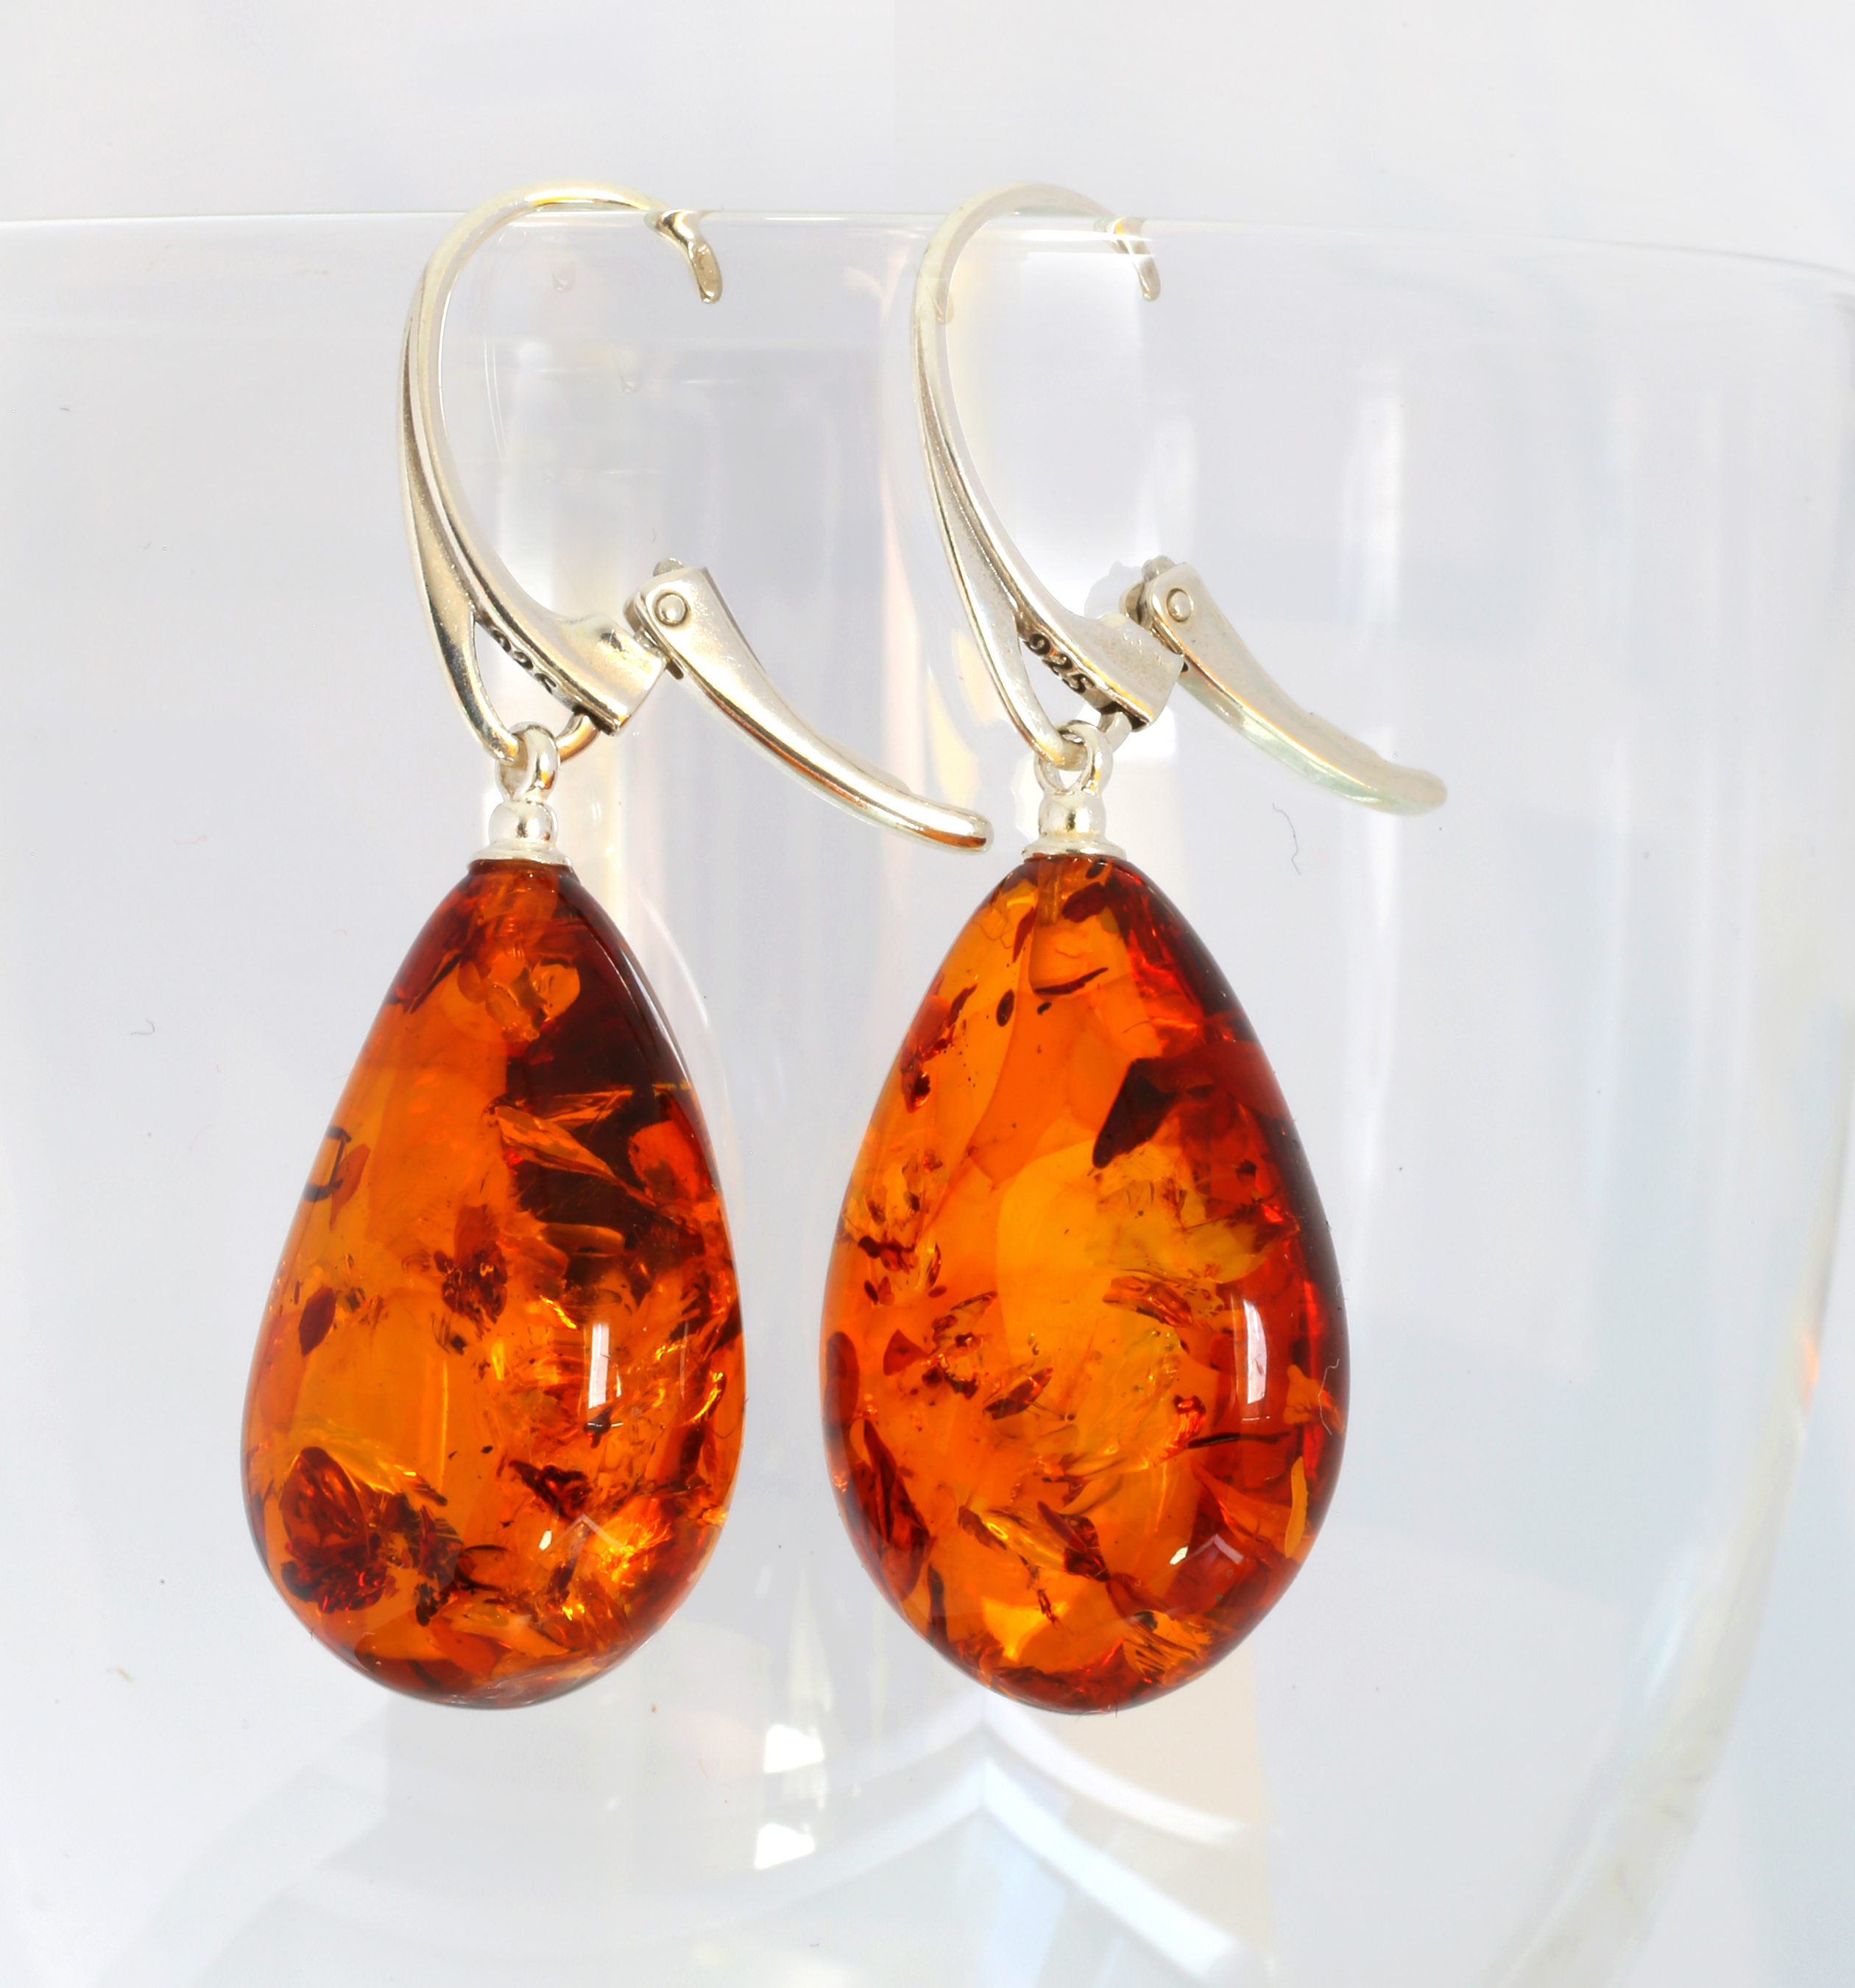 The significance of the amber earrings to a woman